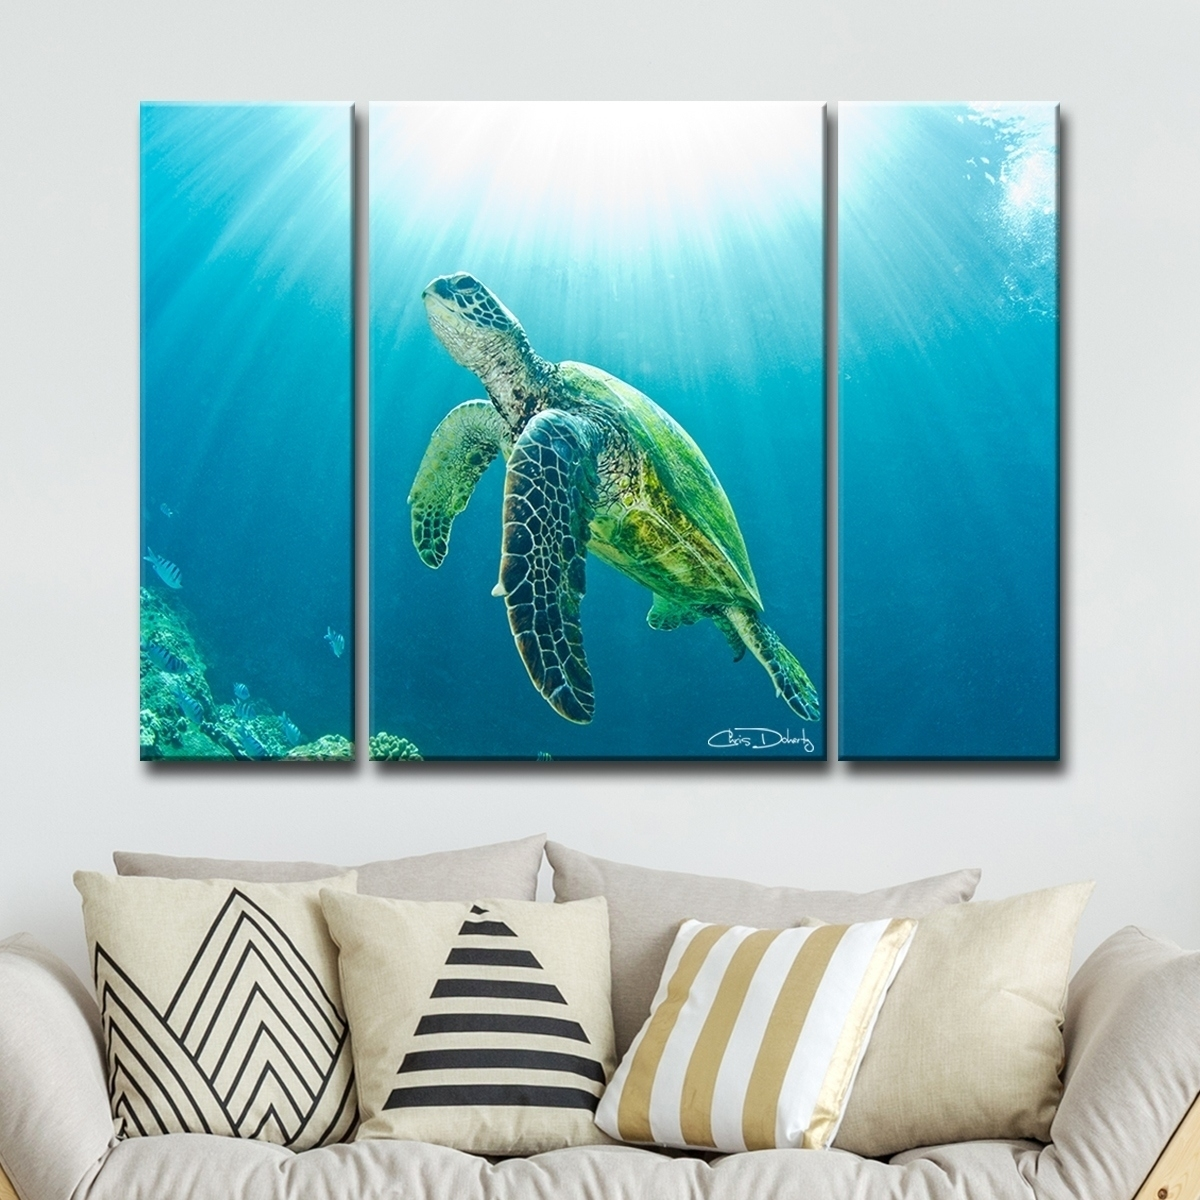 Shop Christopher Doherty 'sea Turtle' Canvas Wall Art (3 Piece Pertaining To Most Recent Sea Turtle Canvas Wall Art (View 18 of 20)